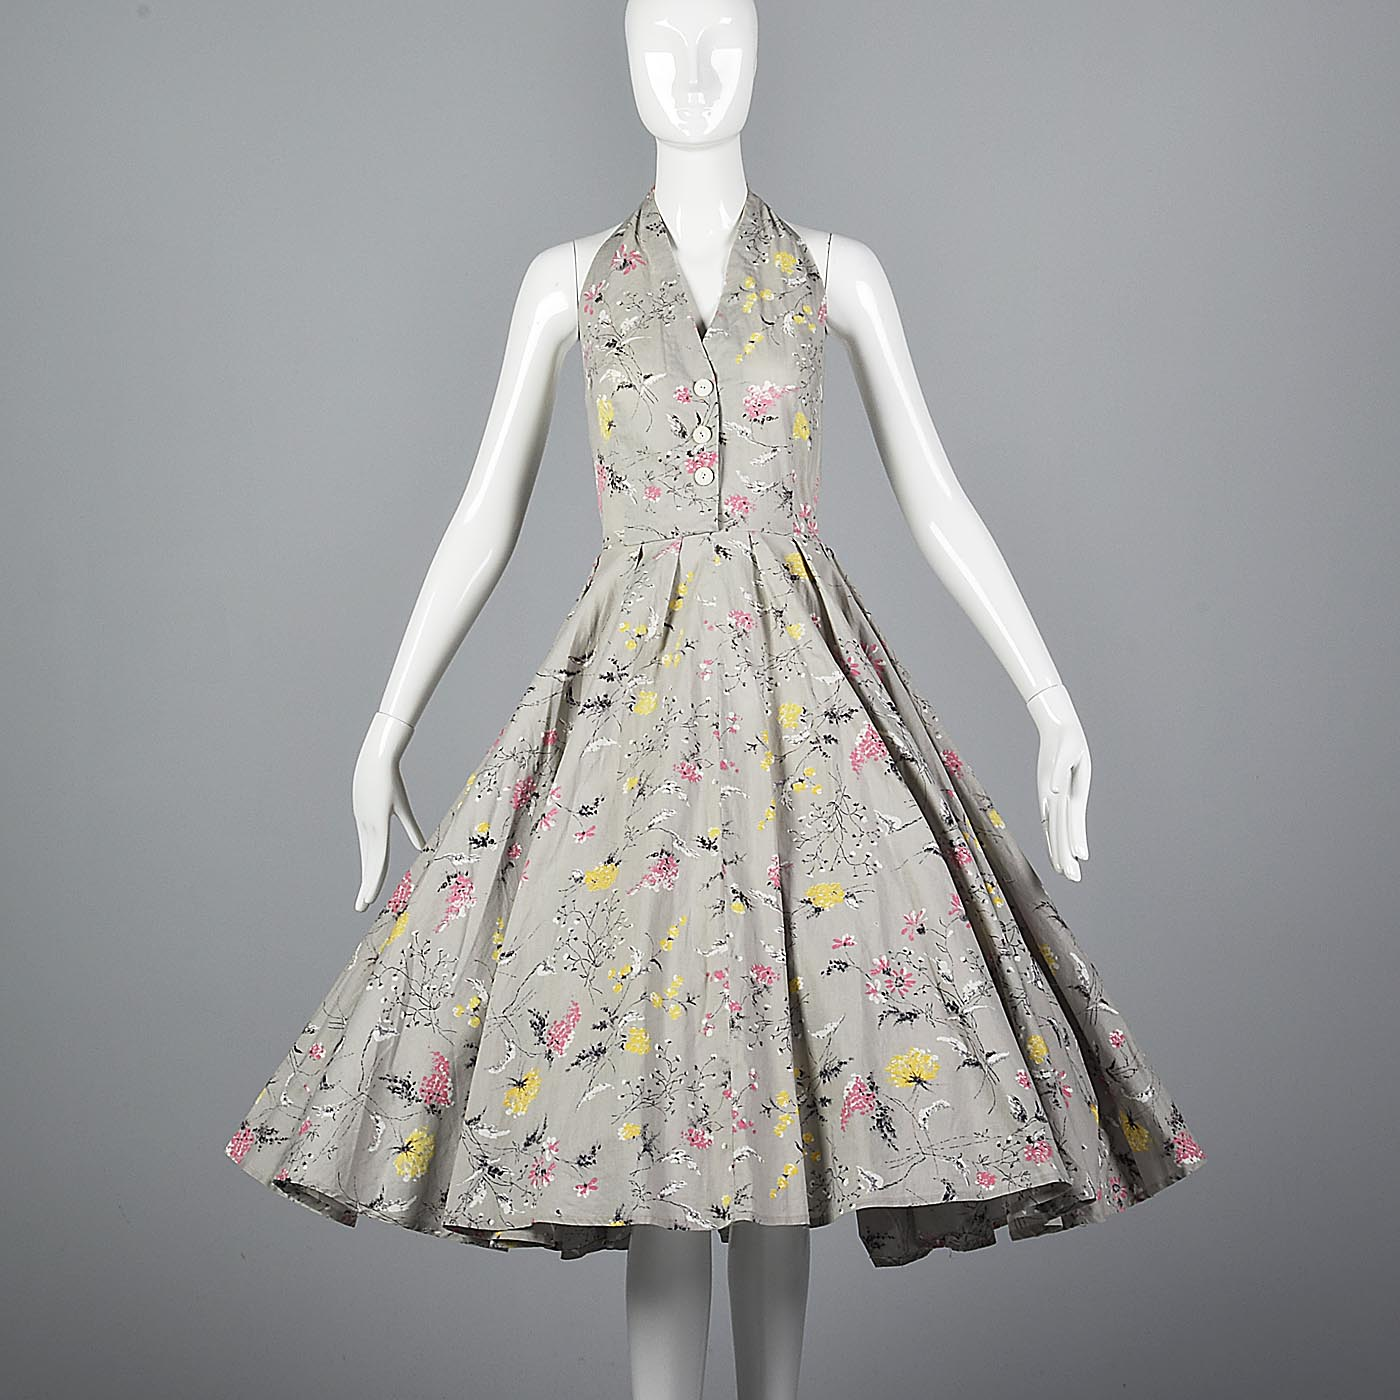 1950s Gray Floral Print Halter Dress with Full Circle Skirt